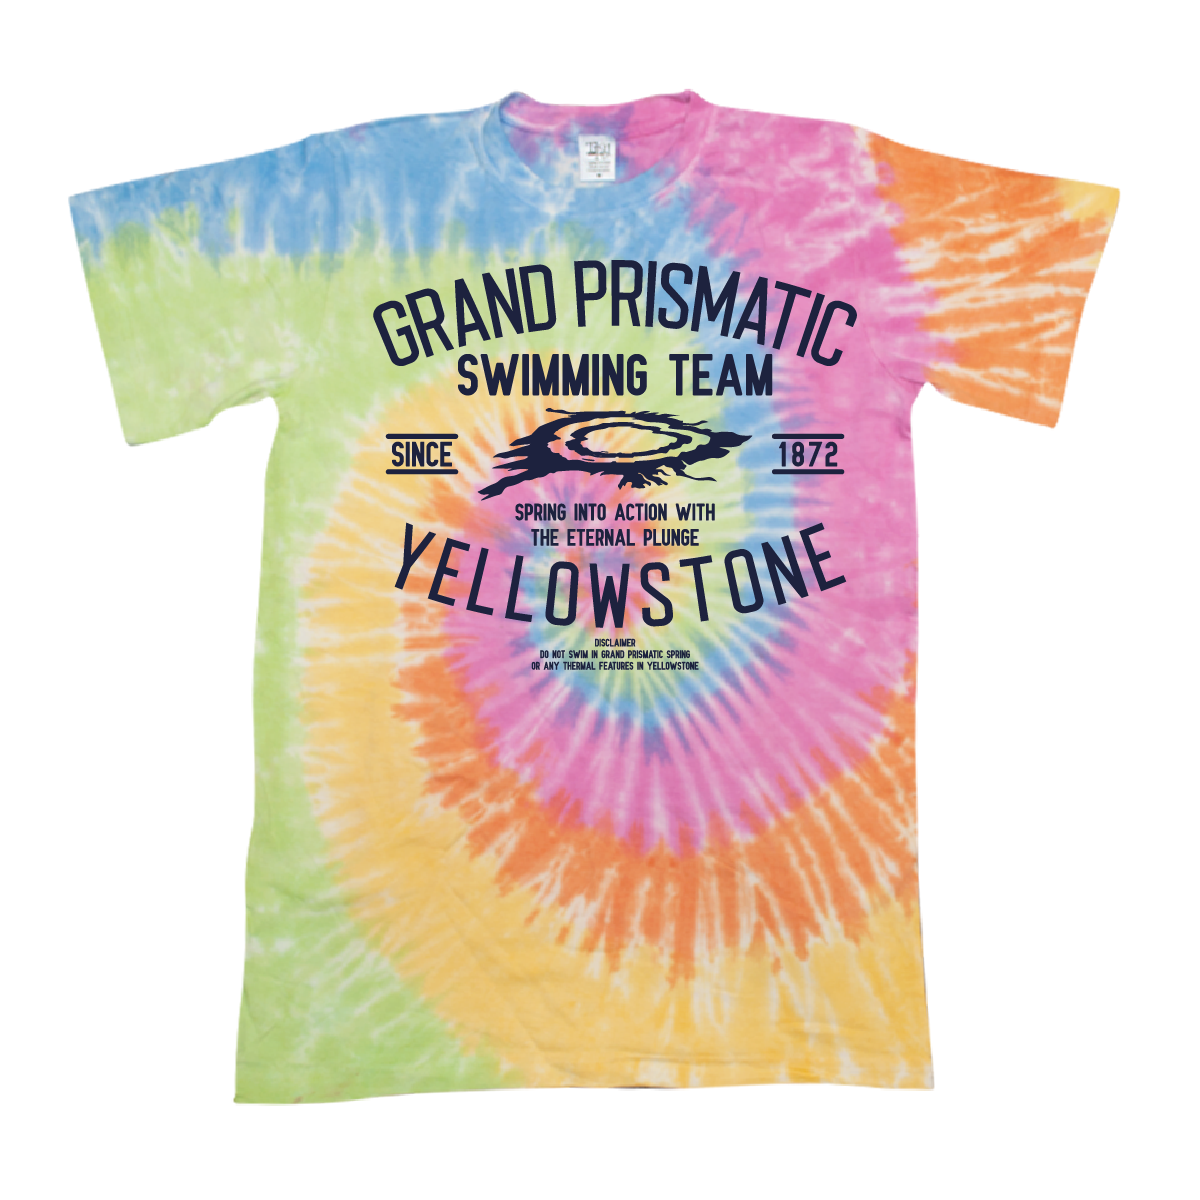 GRAND PRISMATIC SWIM TEAM